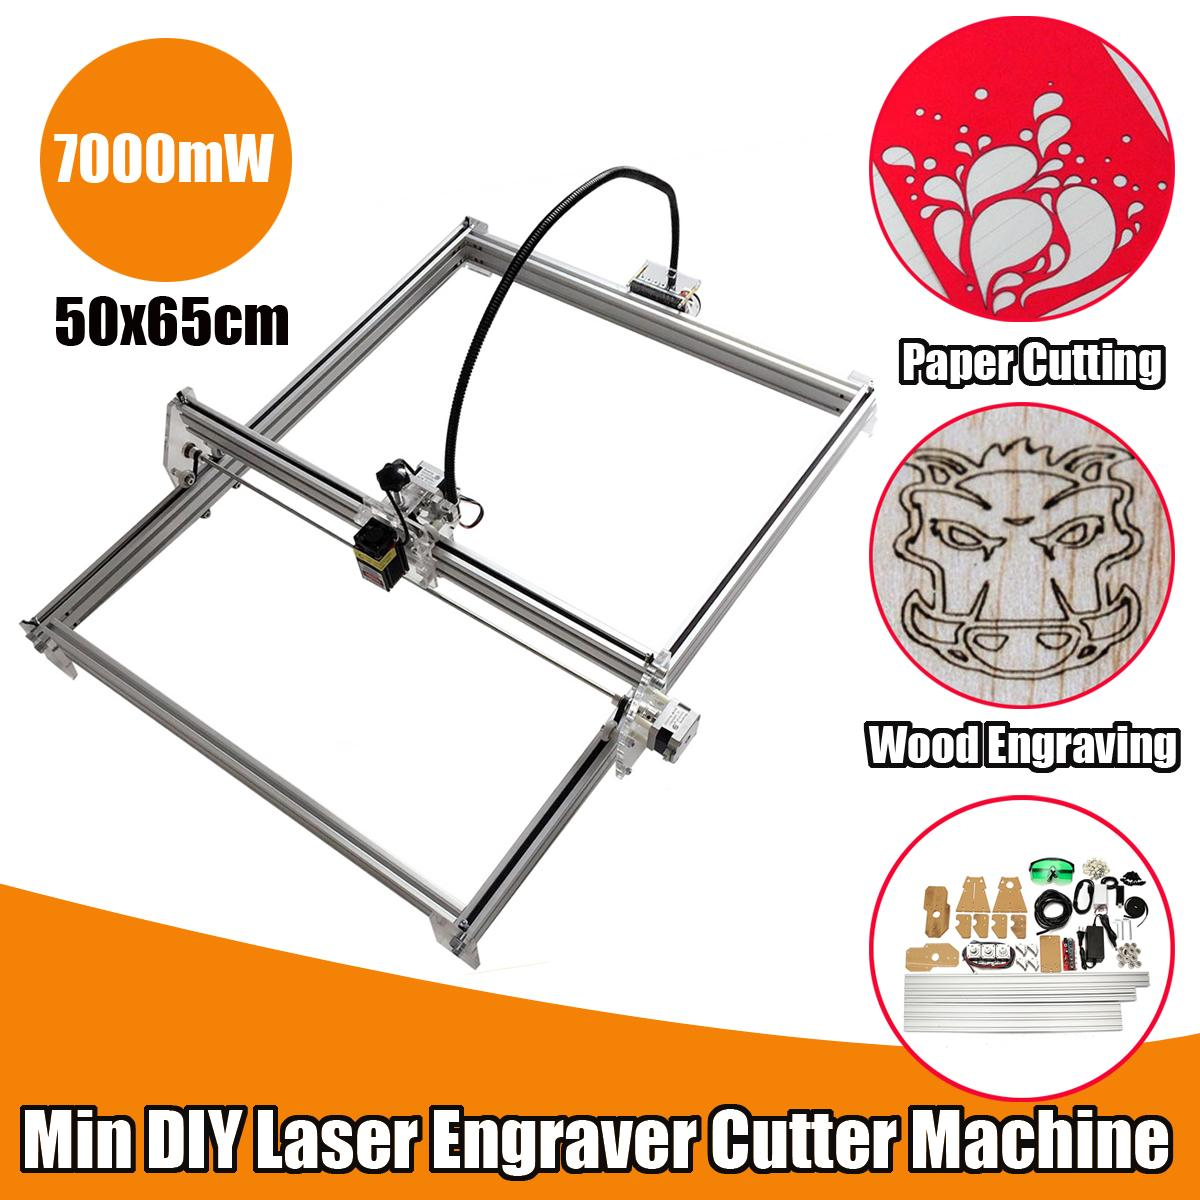 DC 12V 7000mW 65x50cm Mini Blue Laser Cutting/Engraving Engraver Machine DIY Desktop Wood Cutter Power Adjustable +Laser Goggles laser wood cutter wood laser cutting machine laser cutting rocking horse